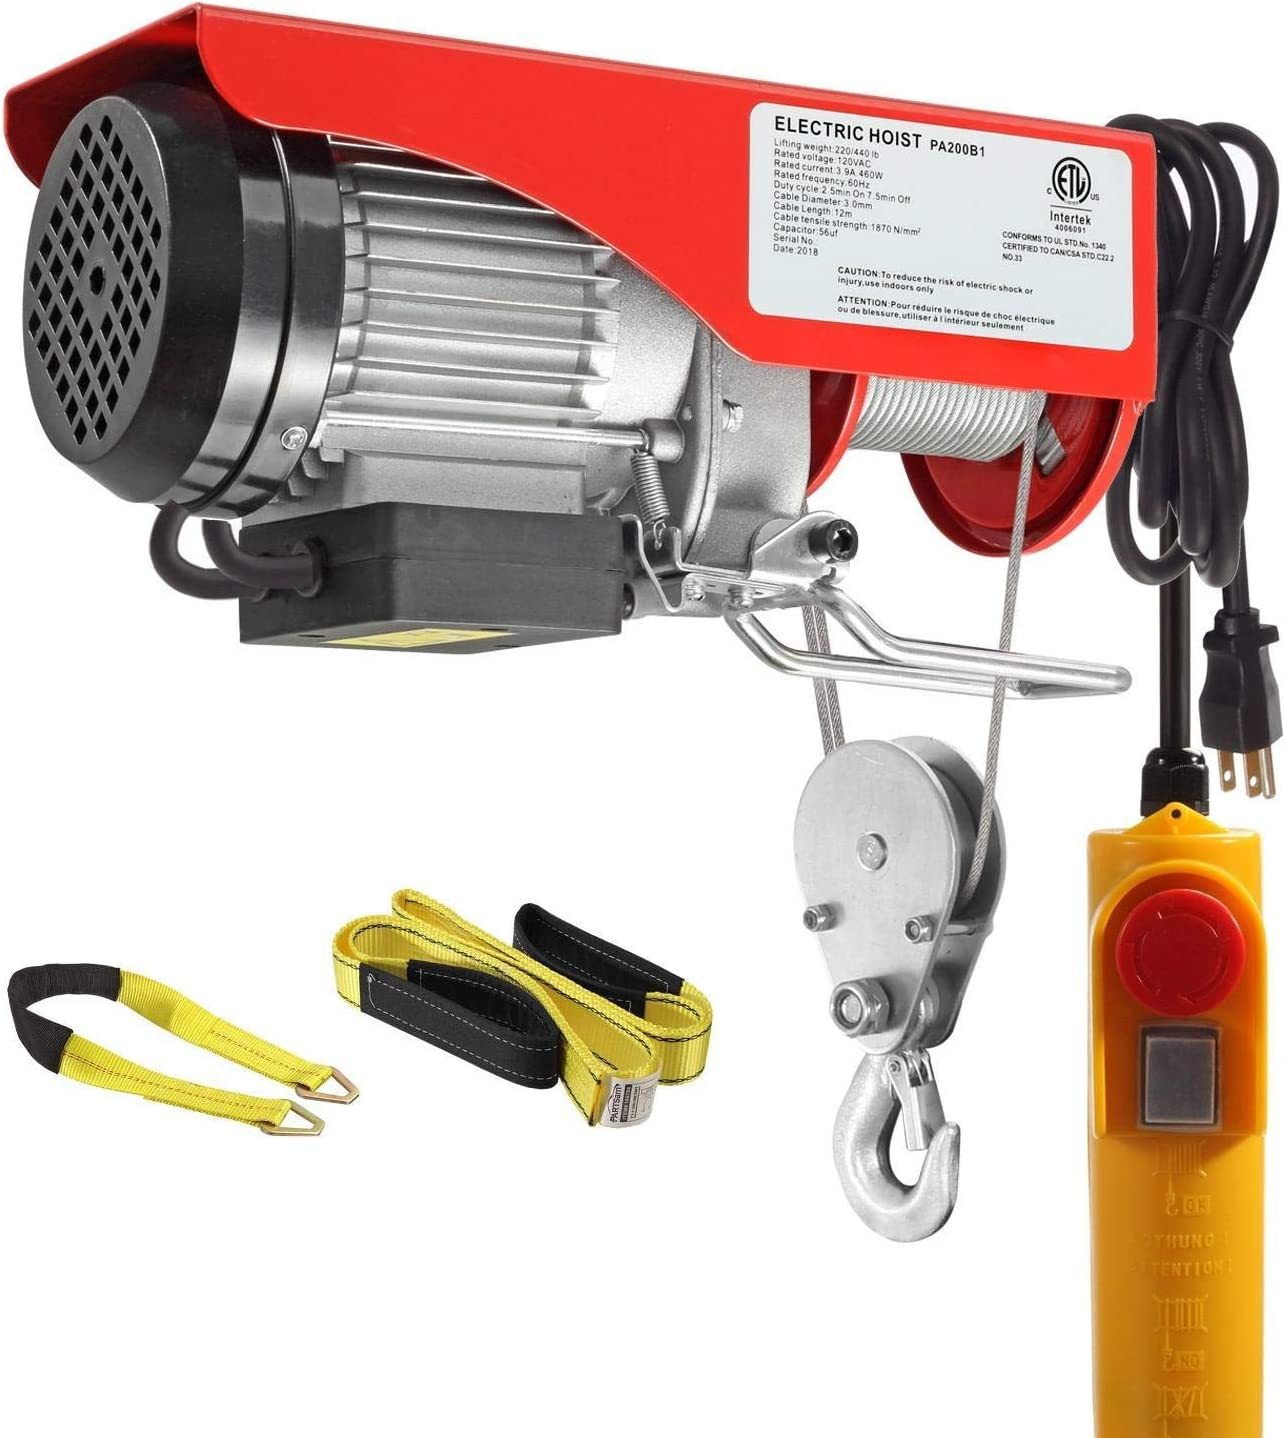 Partsam 440 lbs Lift Electric Hoist Crane Remote Control Overhead Crane Garage Ceiling Pulley Winch Bundled with Towing Strap 2PCS 10Feet x 2inch Bundle Items w//Emergency Stop Switch